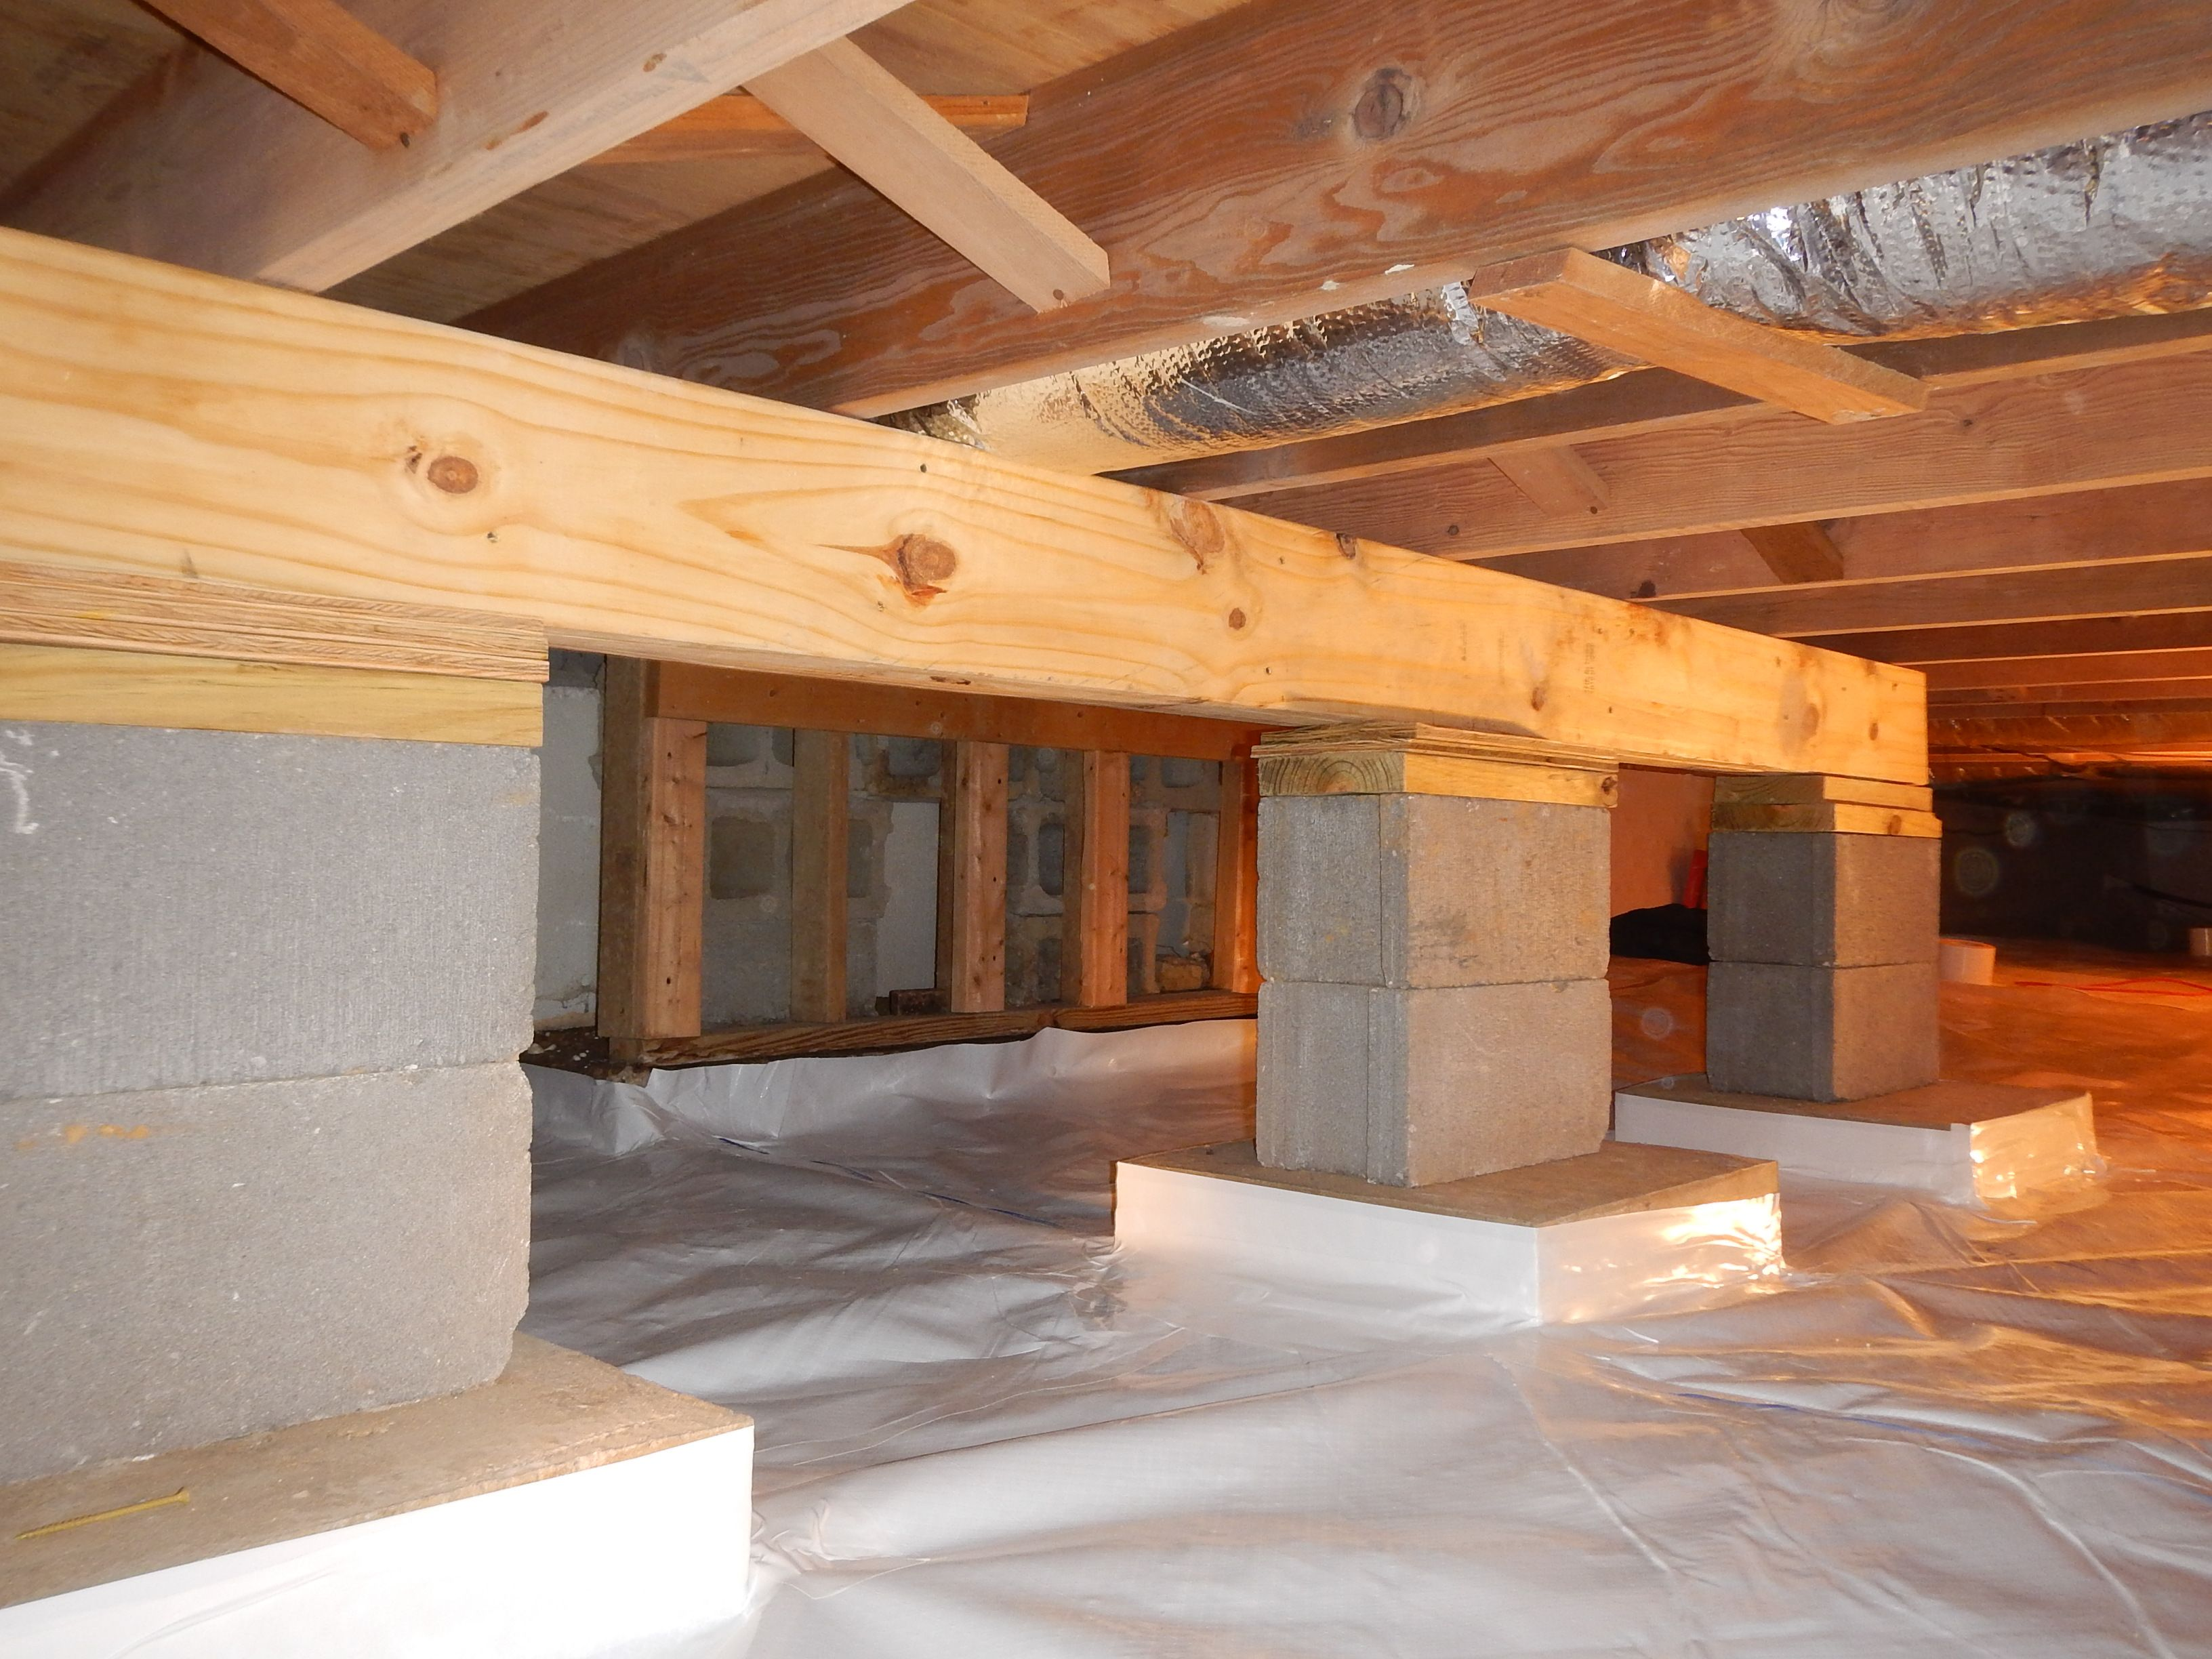 Crawlspace helper beam to prevent the joists from for What does crawl space foundation mean